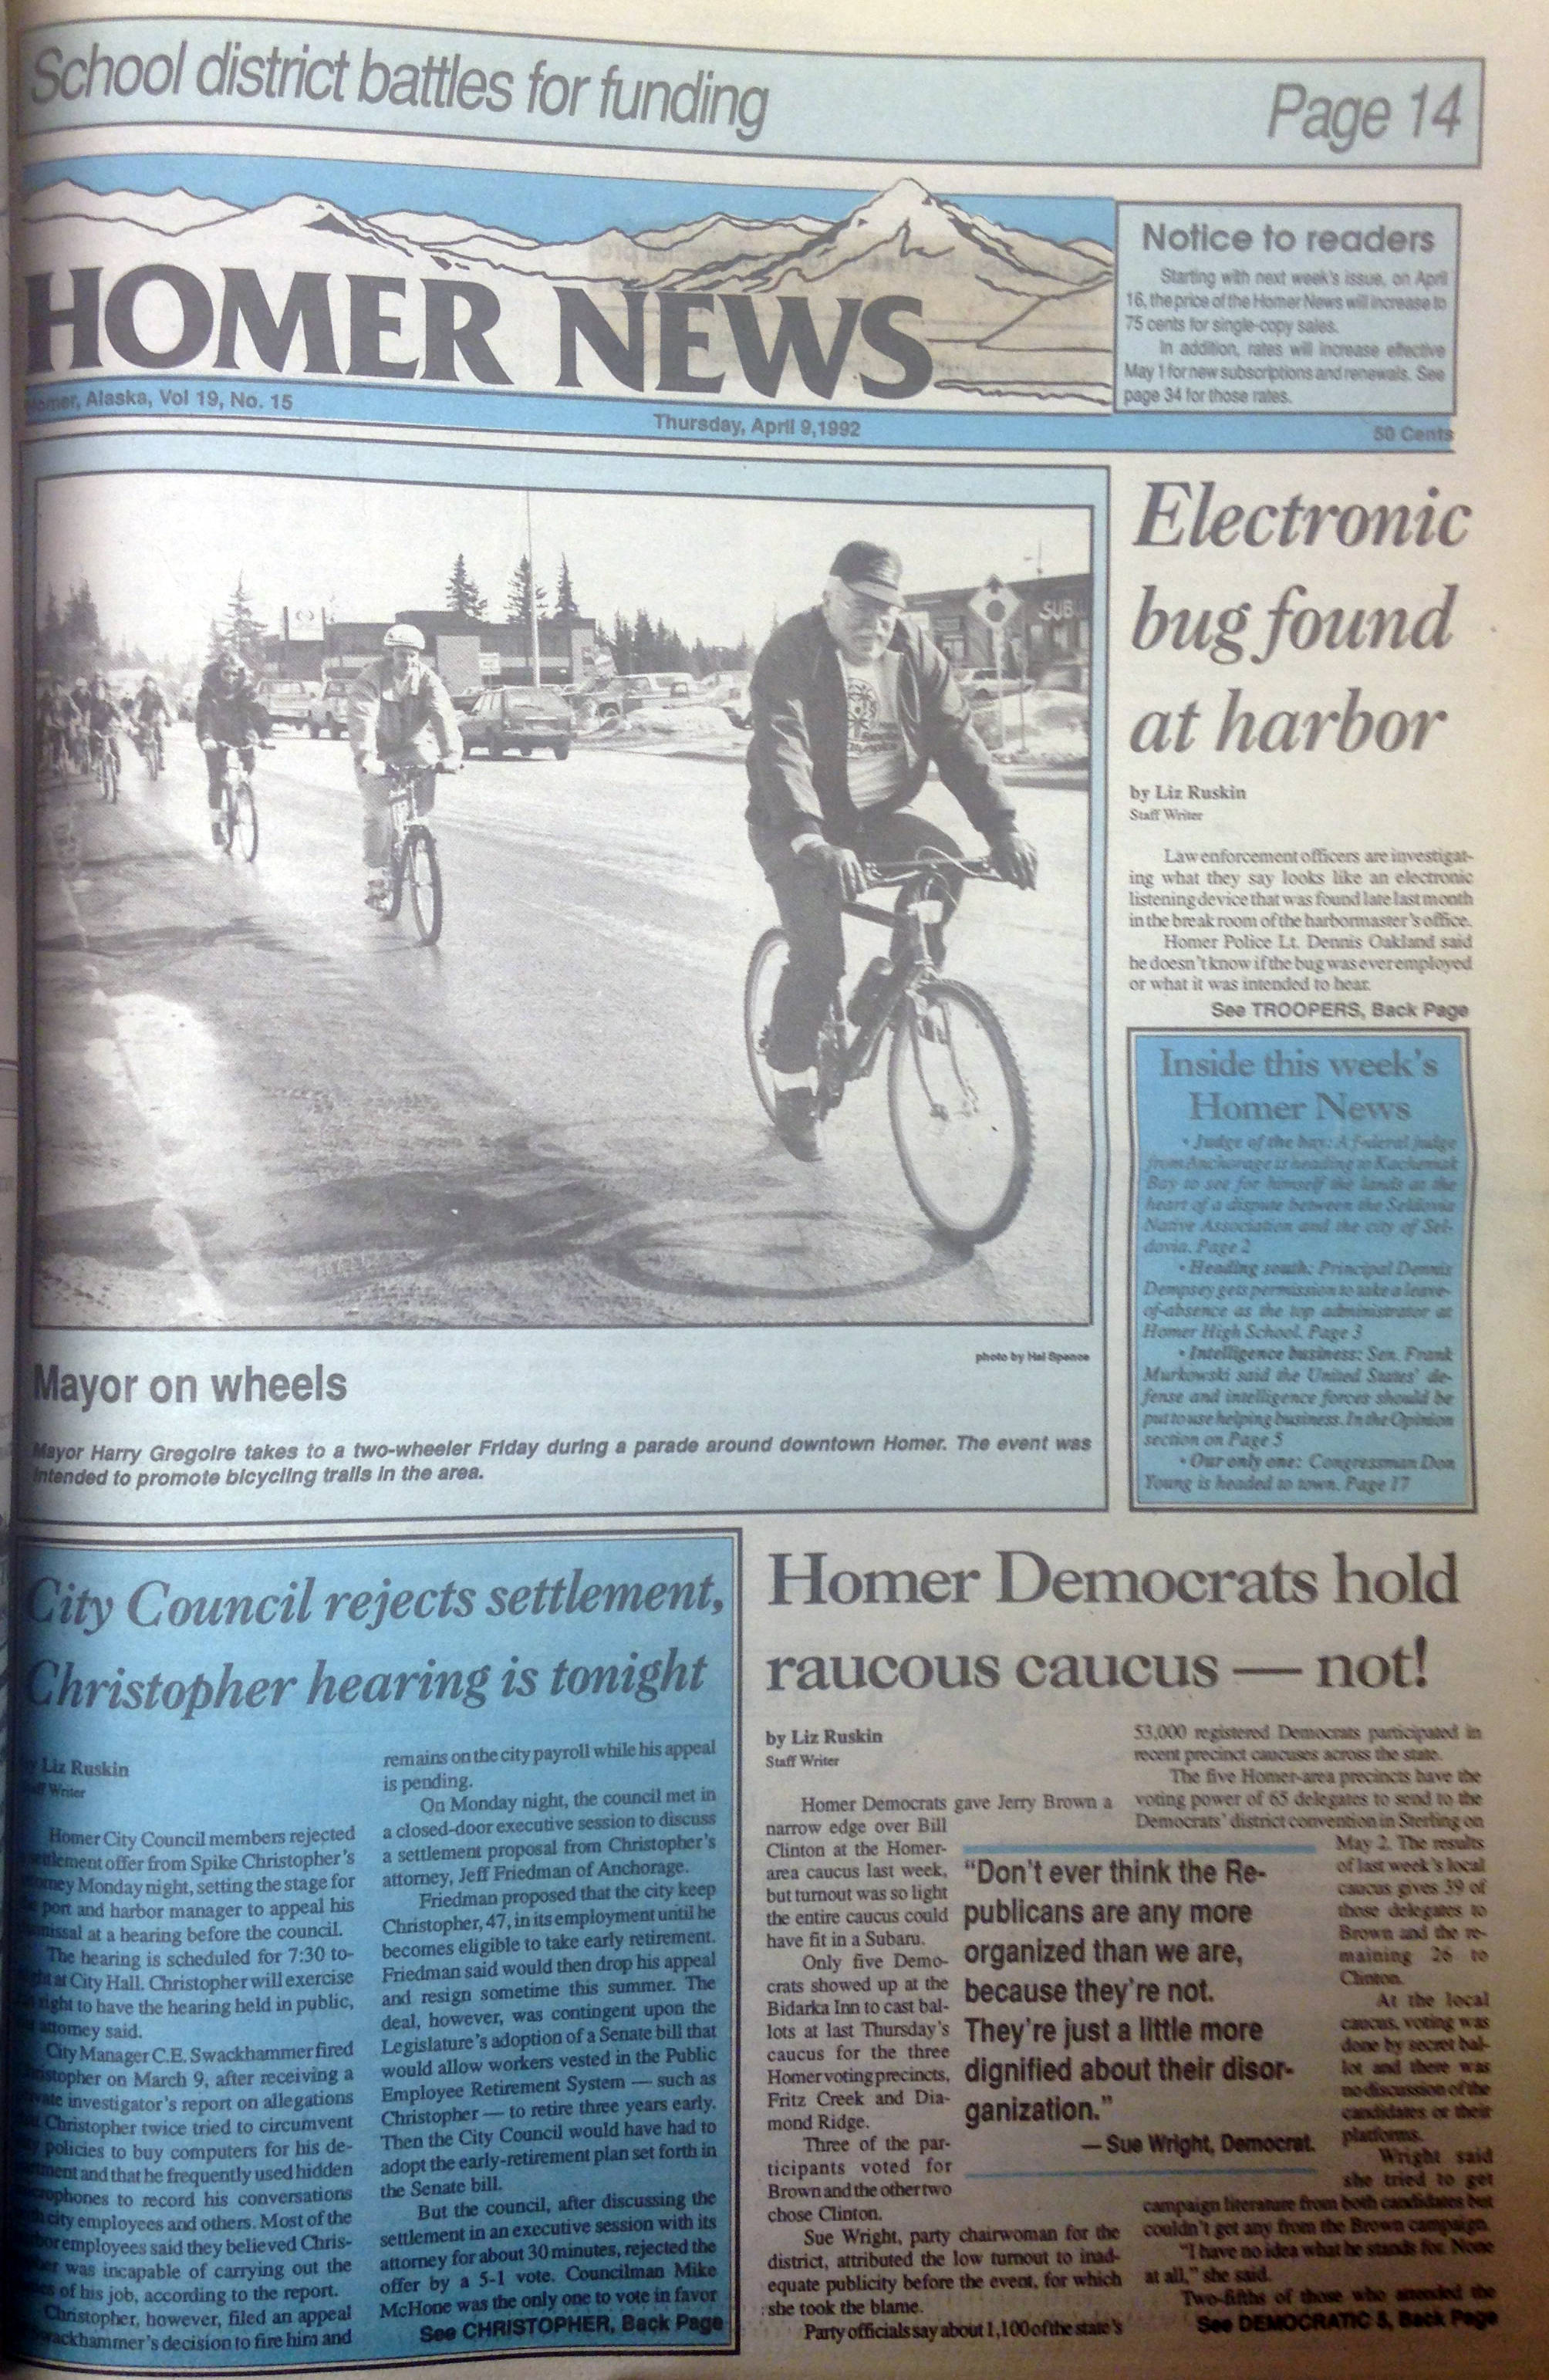 The cover of the April 3, 1992 Homer News, the last issue before the price increased from 50 cents to 75 cents. (Photo by Michael Armstrong/Homer News)